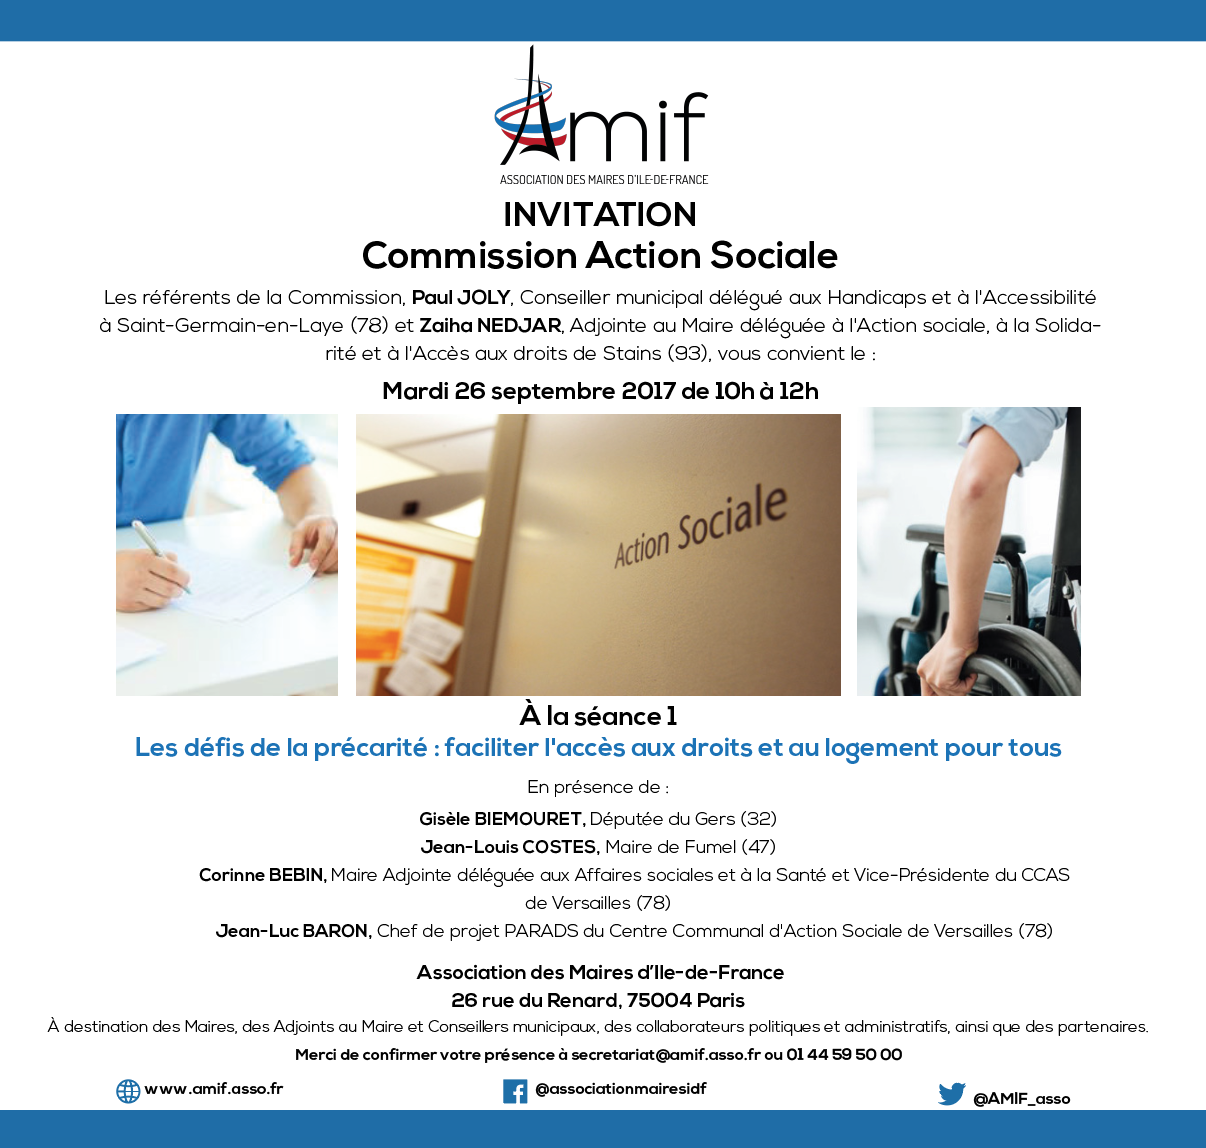 Commission Action sociale - Séance 1 - Mardi 26 septembre 2017 - 10h-12h